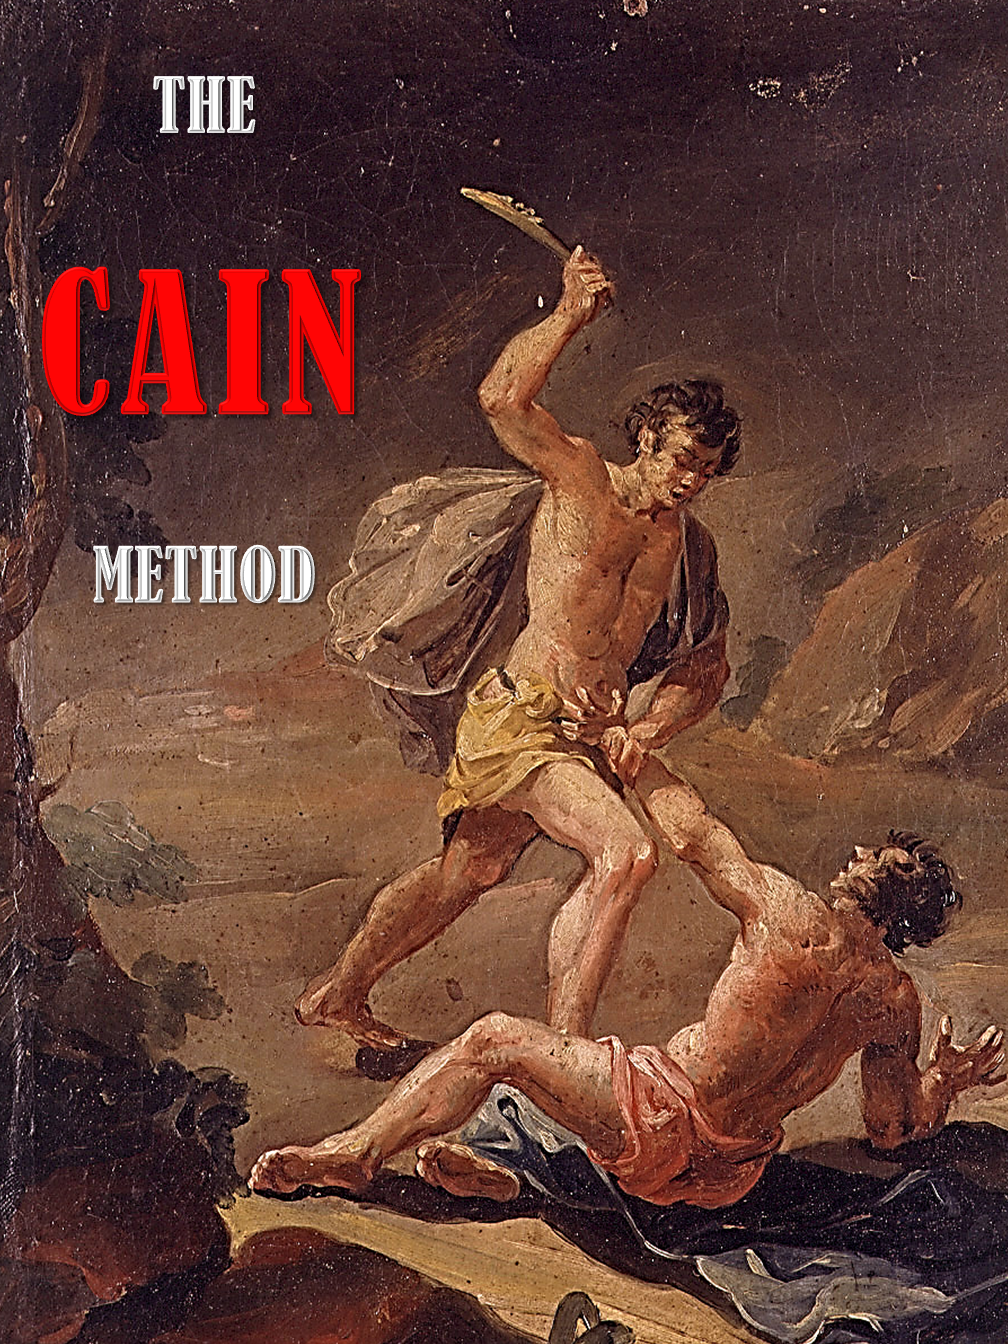 The Cain Method!